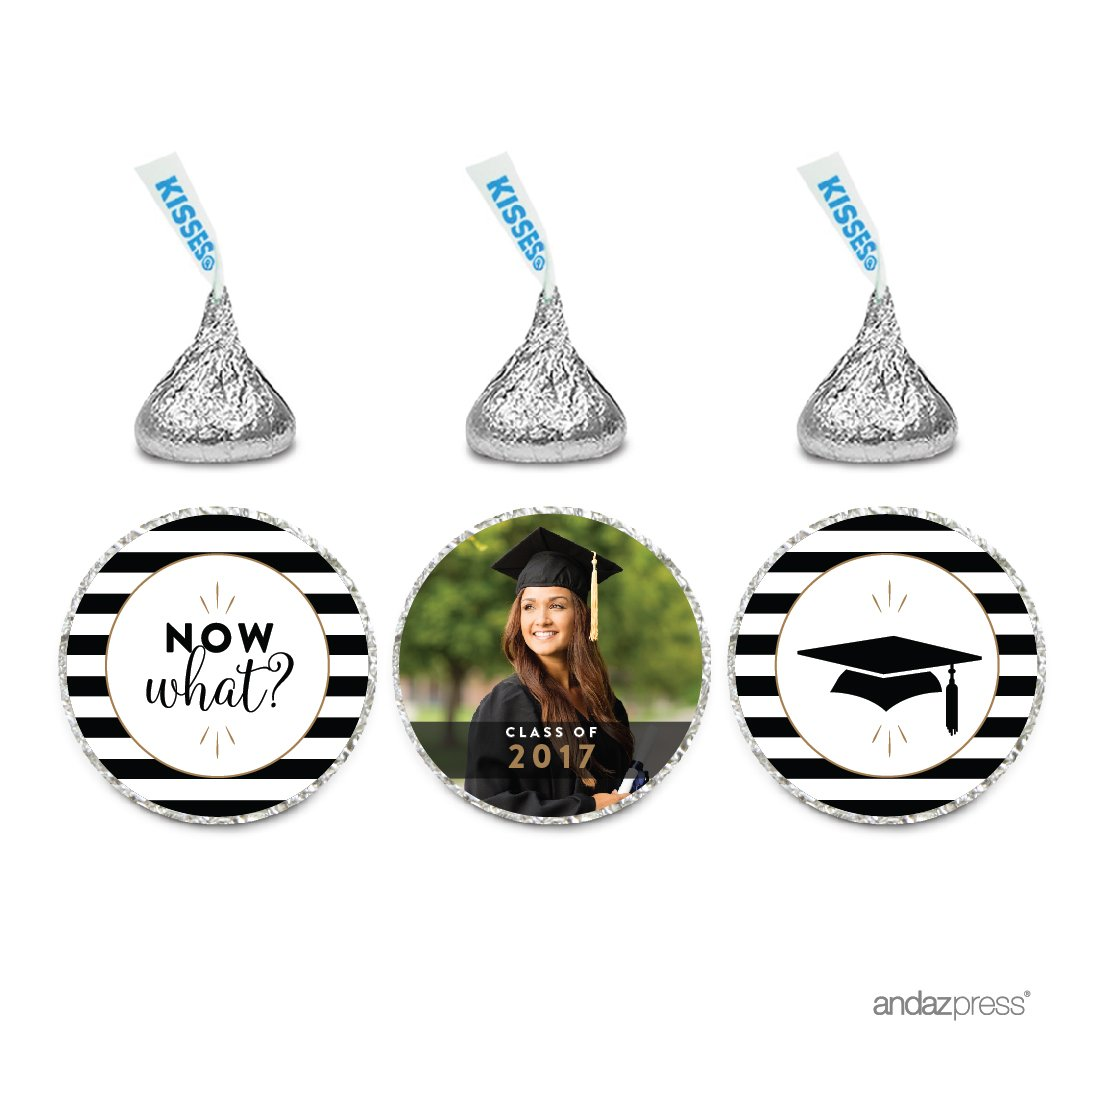 Andaz Press Personalized Graduation Photo Party Collection, Funny Chocolate Drop Label Stickers, Graphic + Now What? + Graphic, 216-Pack, Custom Image, Fits Hershey's Kisses